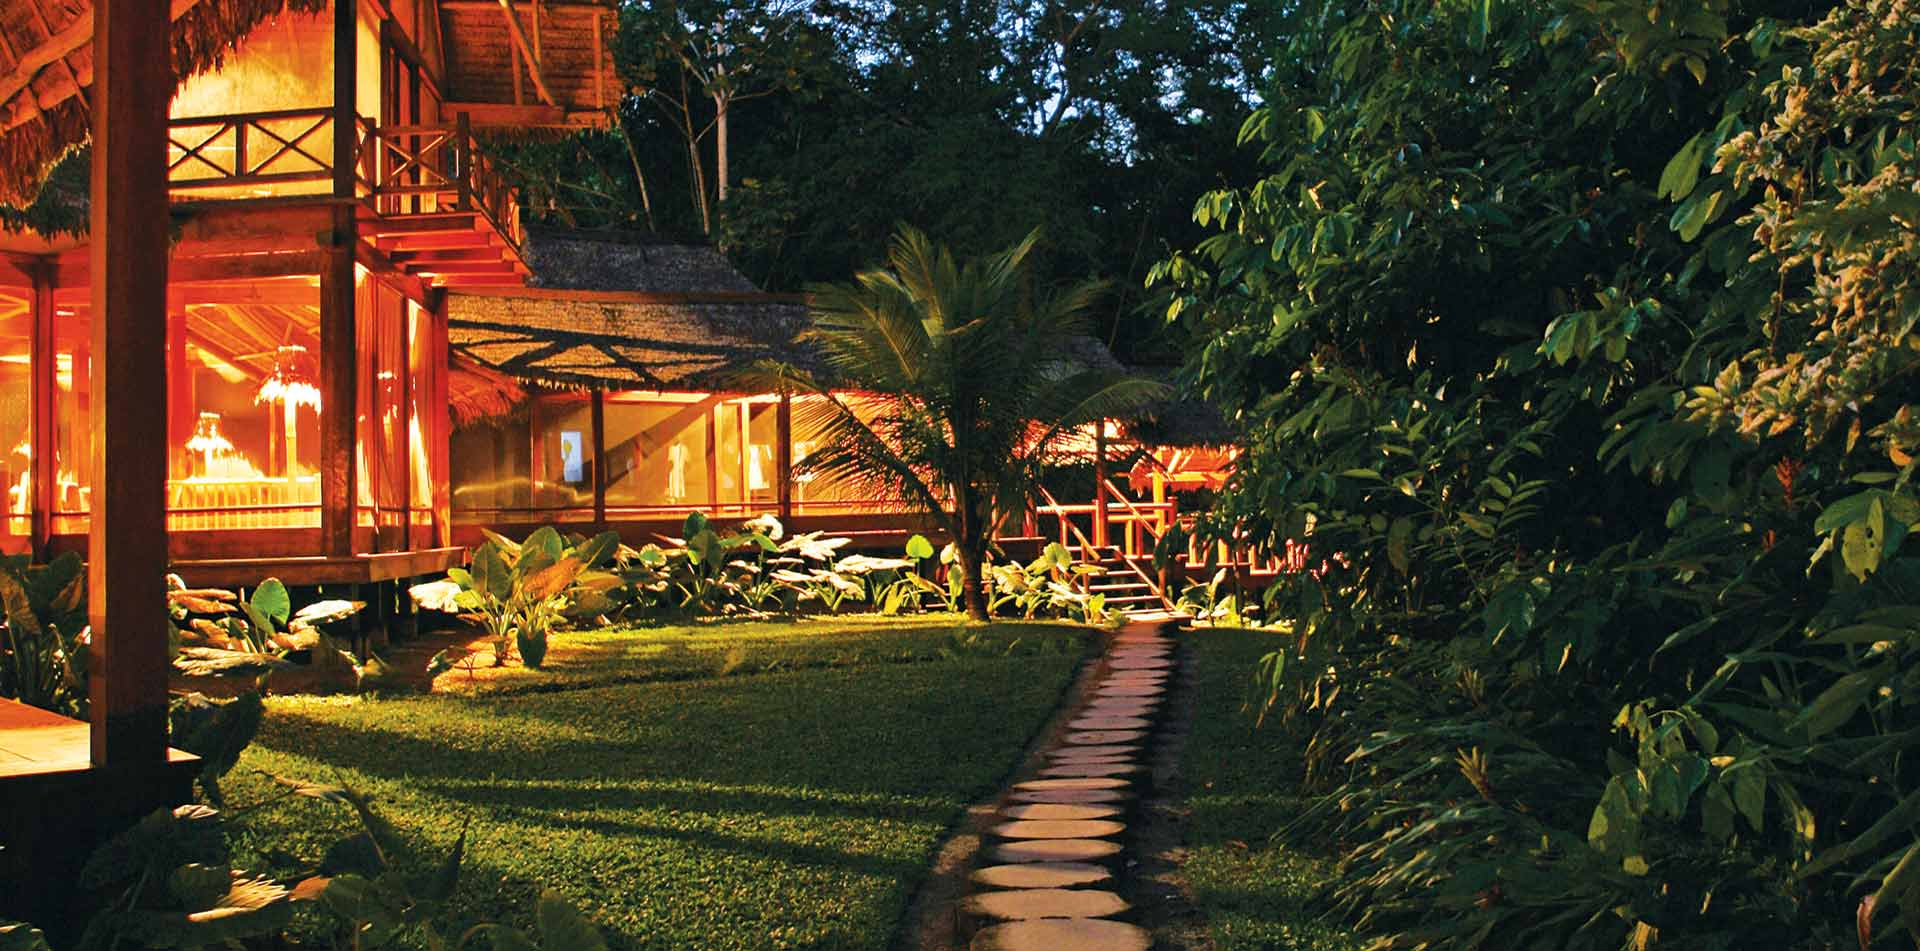 South America Peru Inkaterra Reserva Amazonica eco-lodge hotel exterior at night - luxury vacation destinations